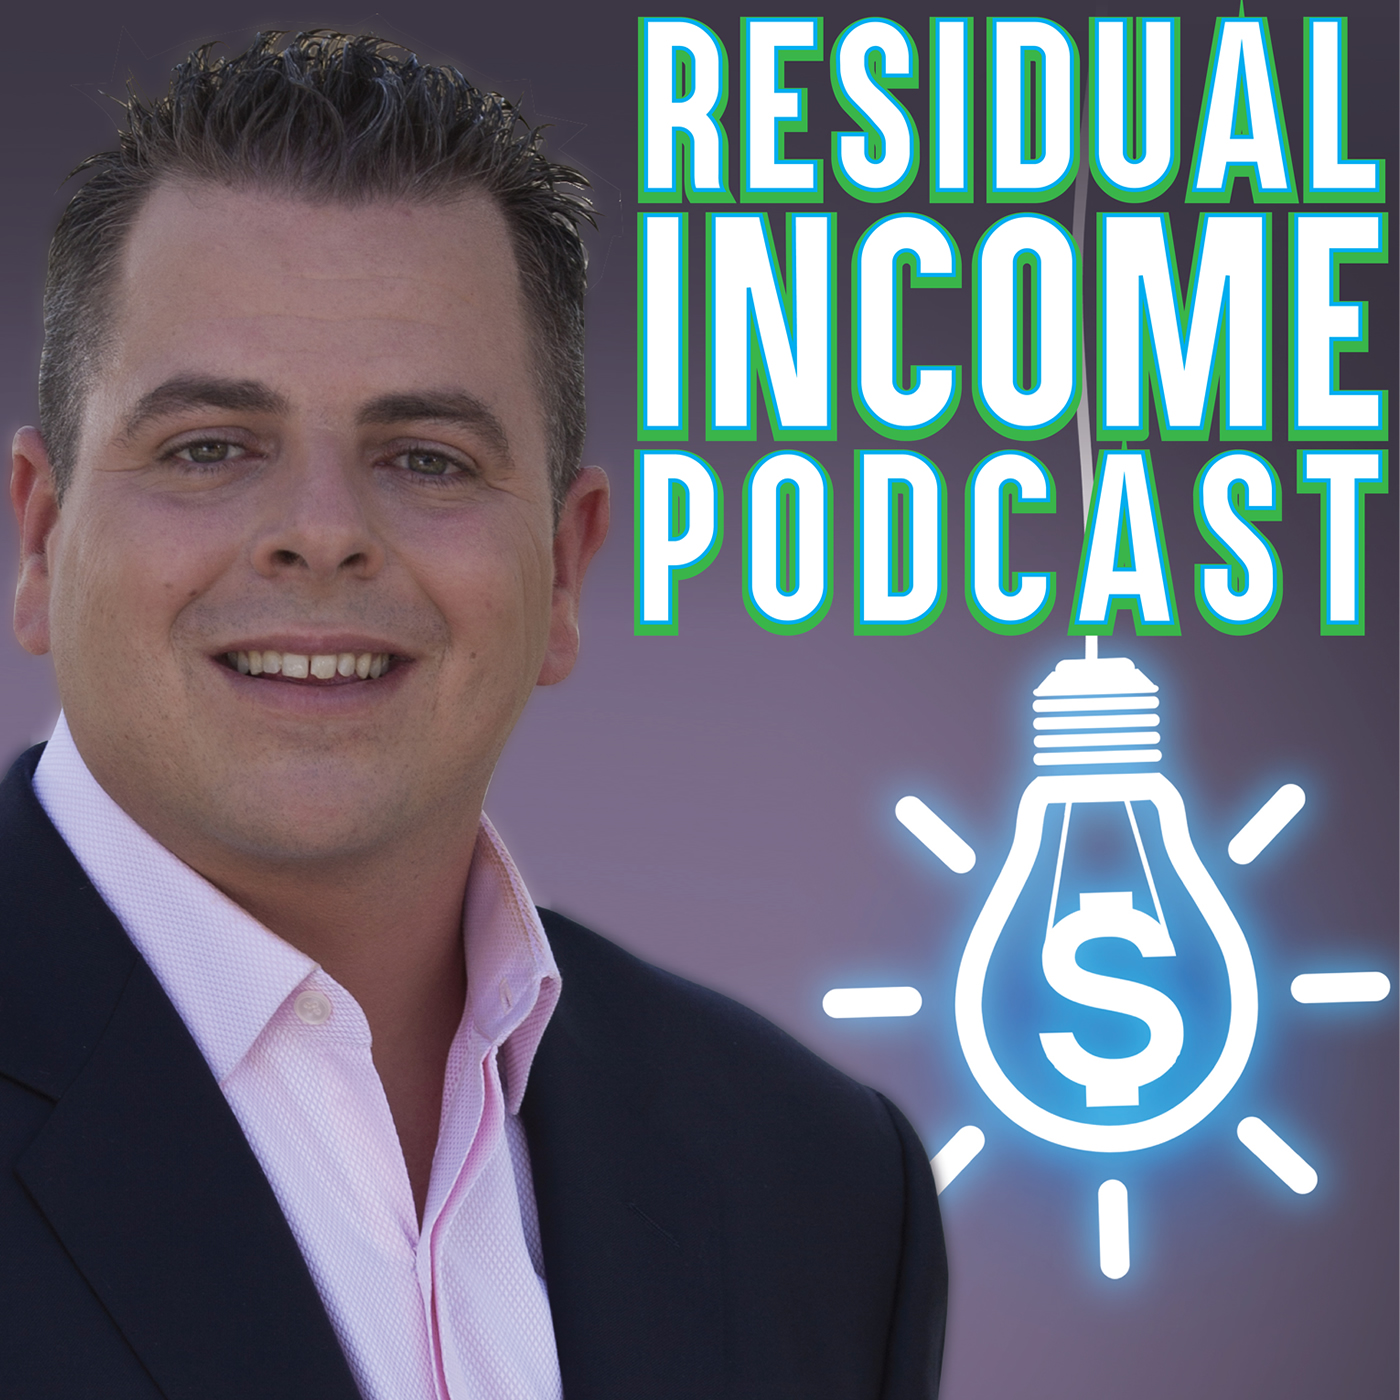 Residual Income Podcast